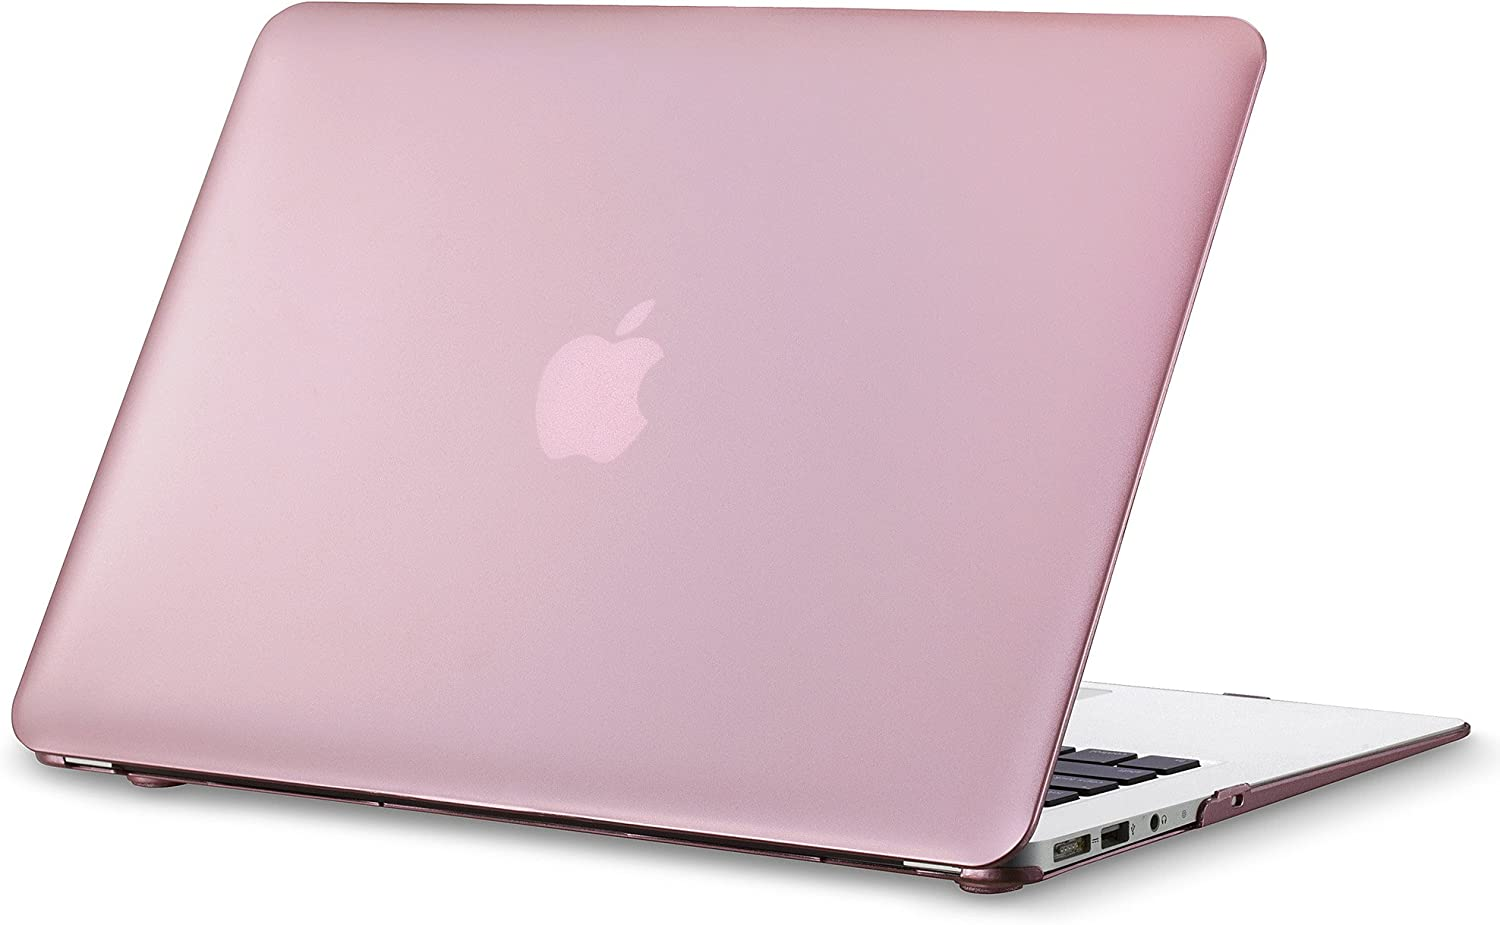 Kuzy - MacBook Air 13 inch Metallic Hard Case for MacBook Air 13.3 inch A1466 & A1369 Older Version Matte Shell Cover - Pink